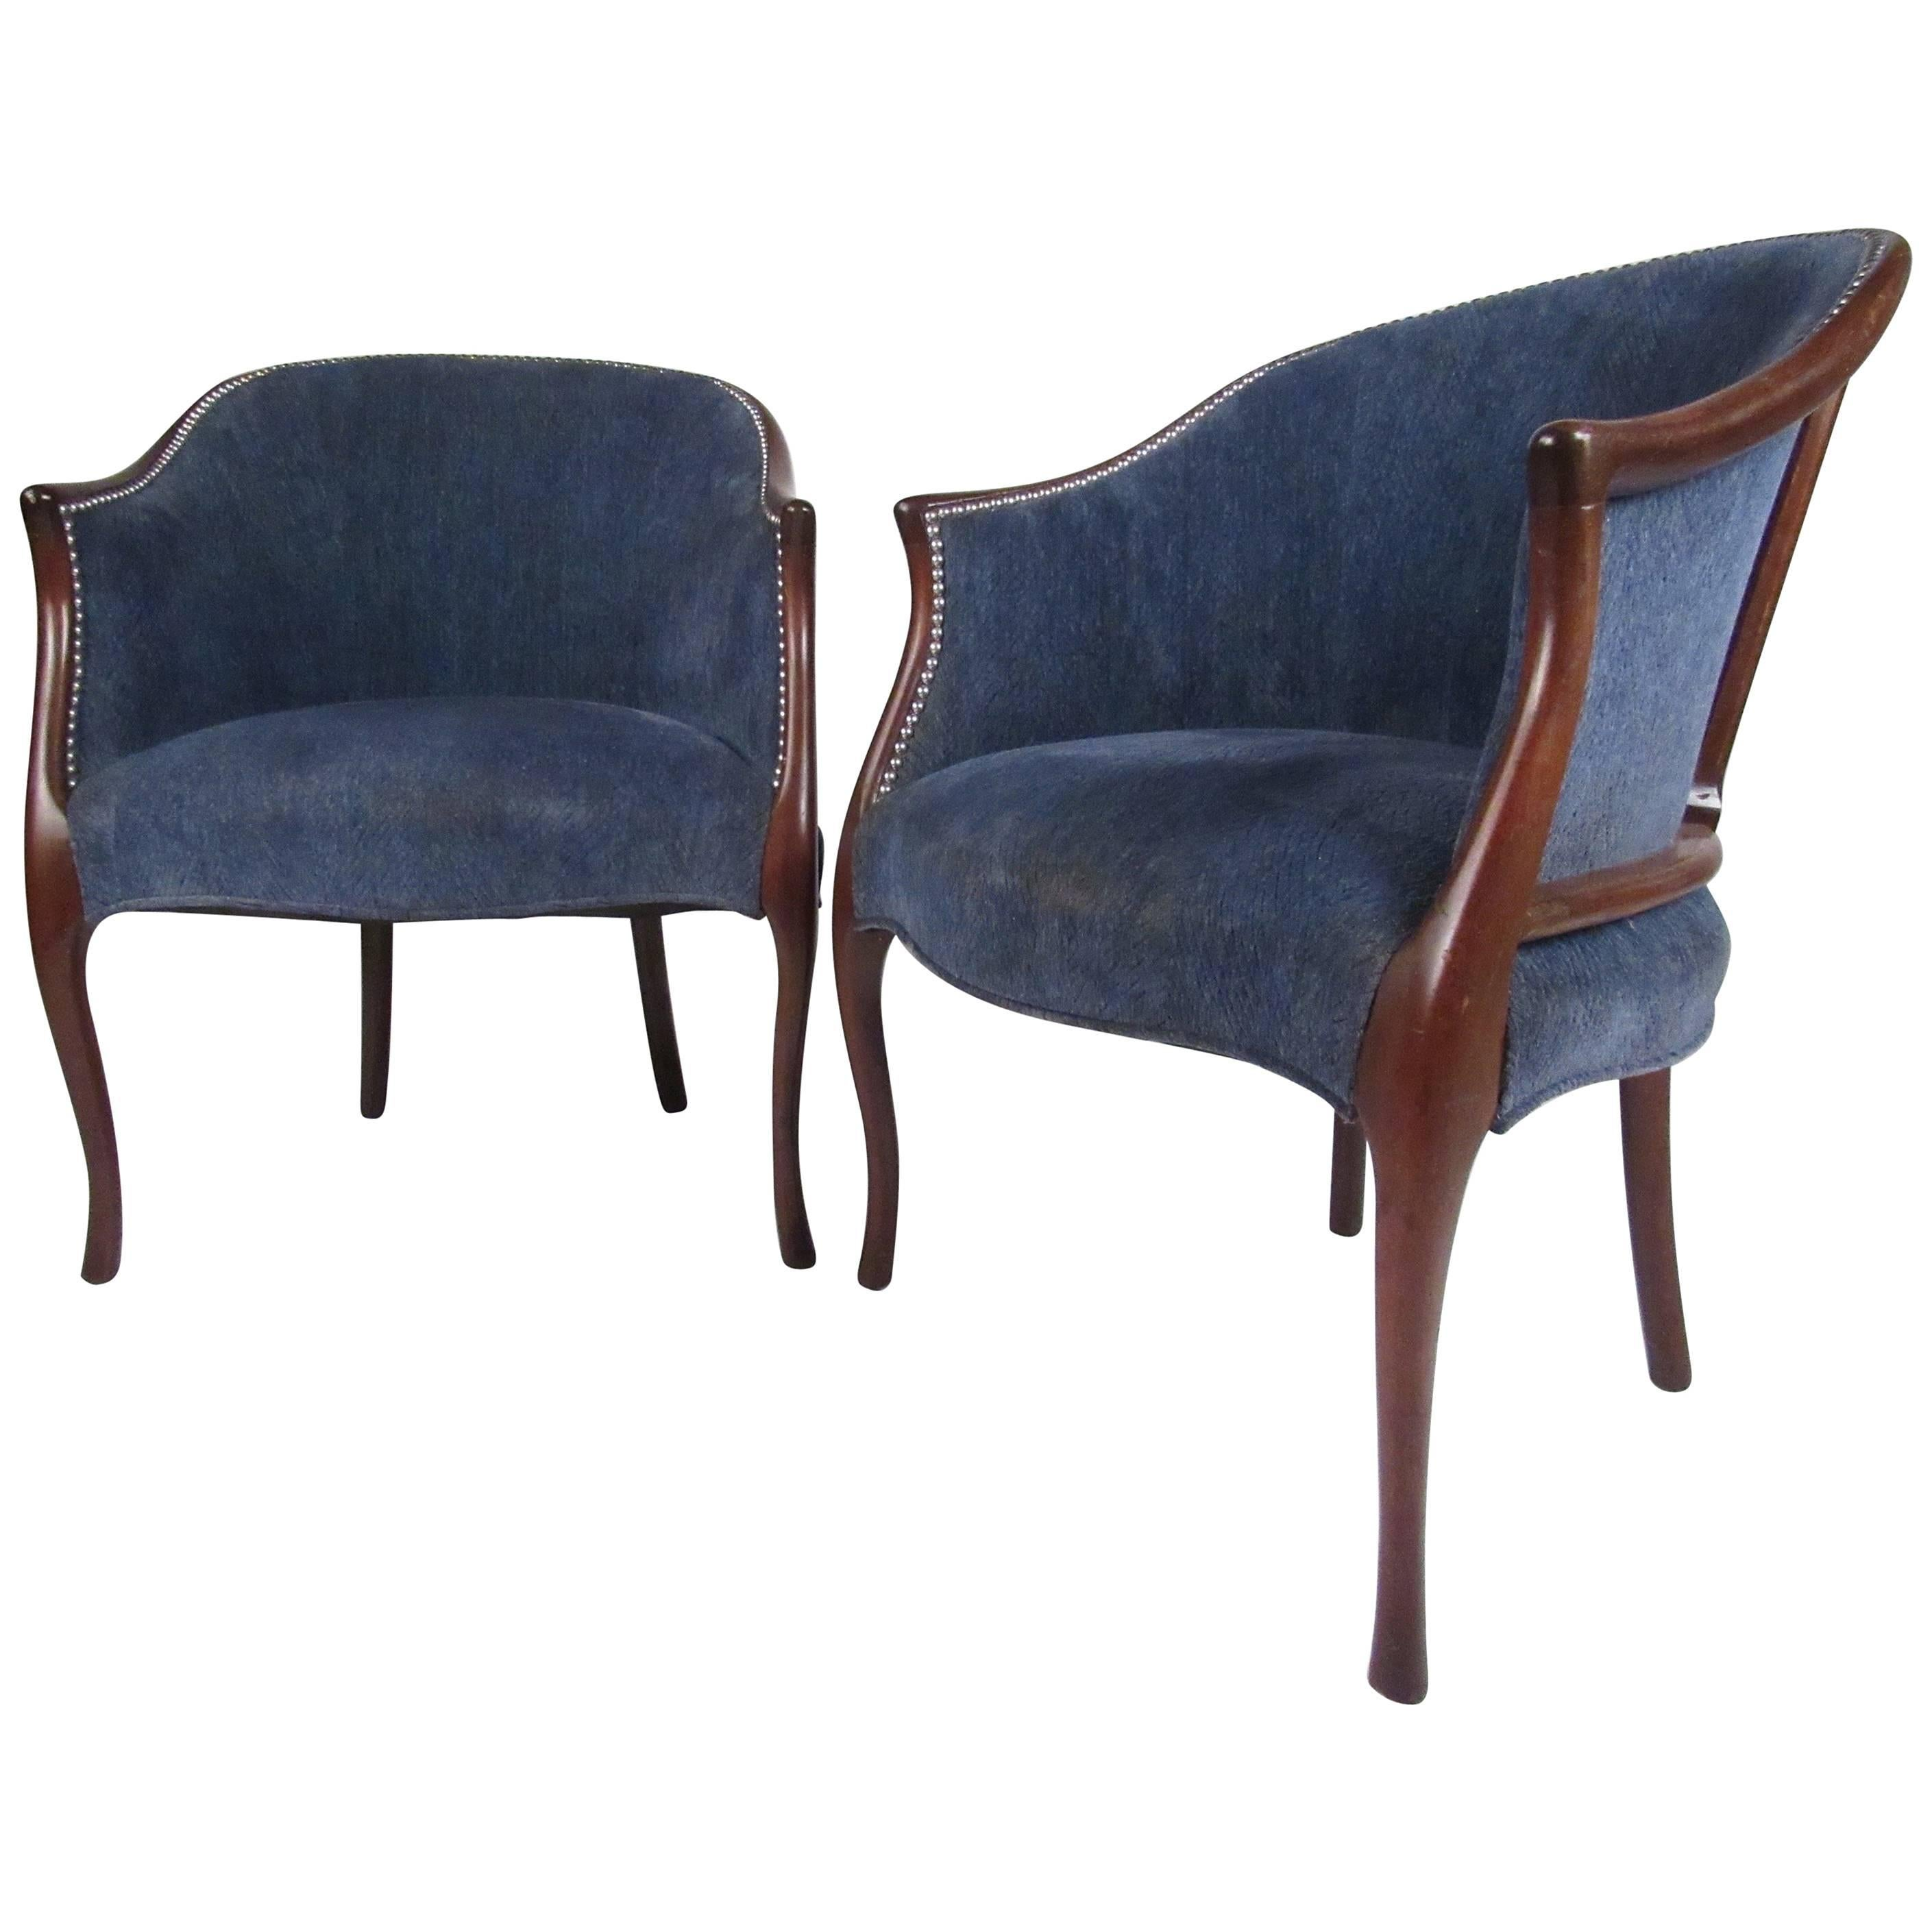 Pair Of Vintage Modern Club Chairs By Hickory Chair